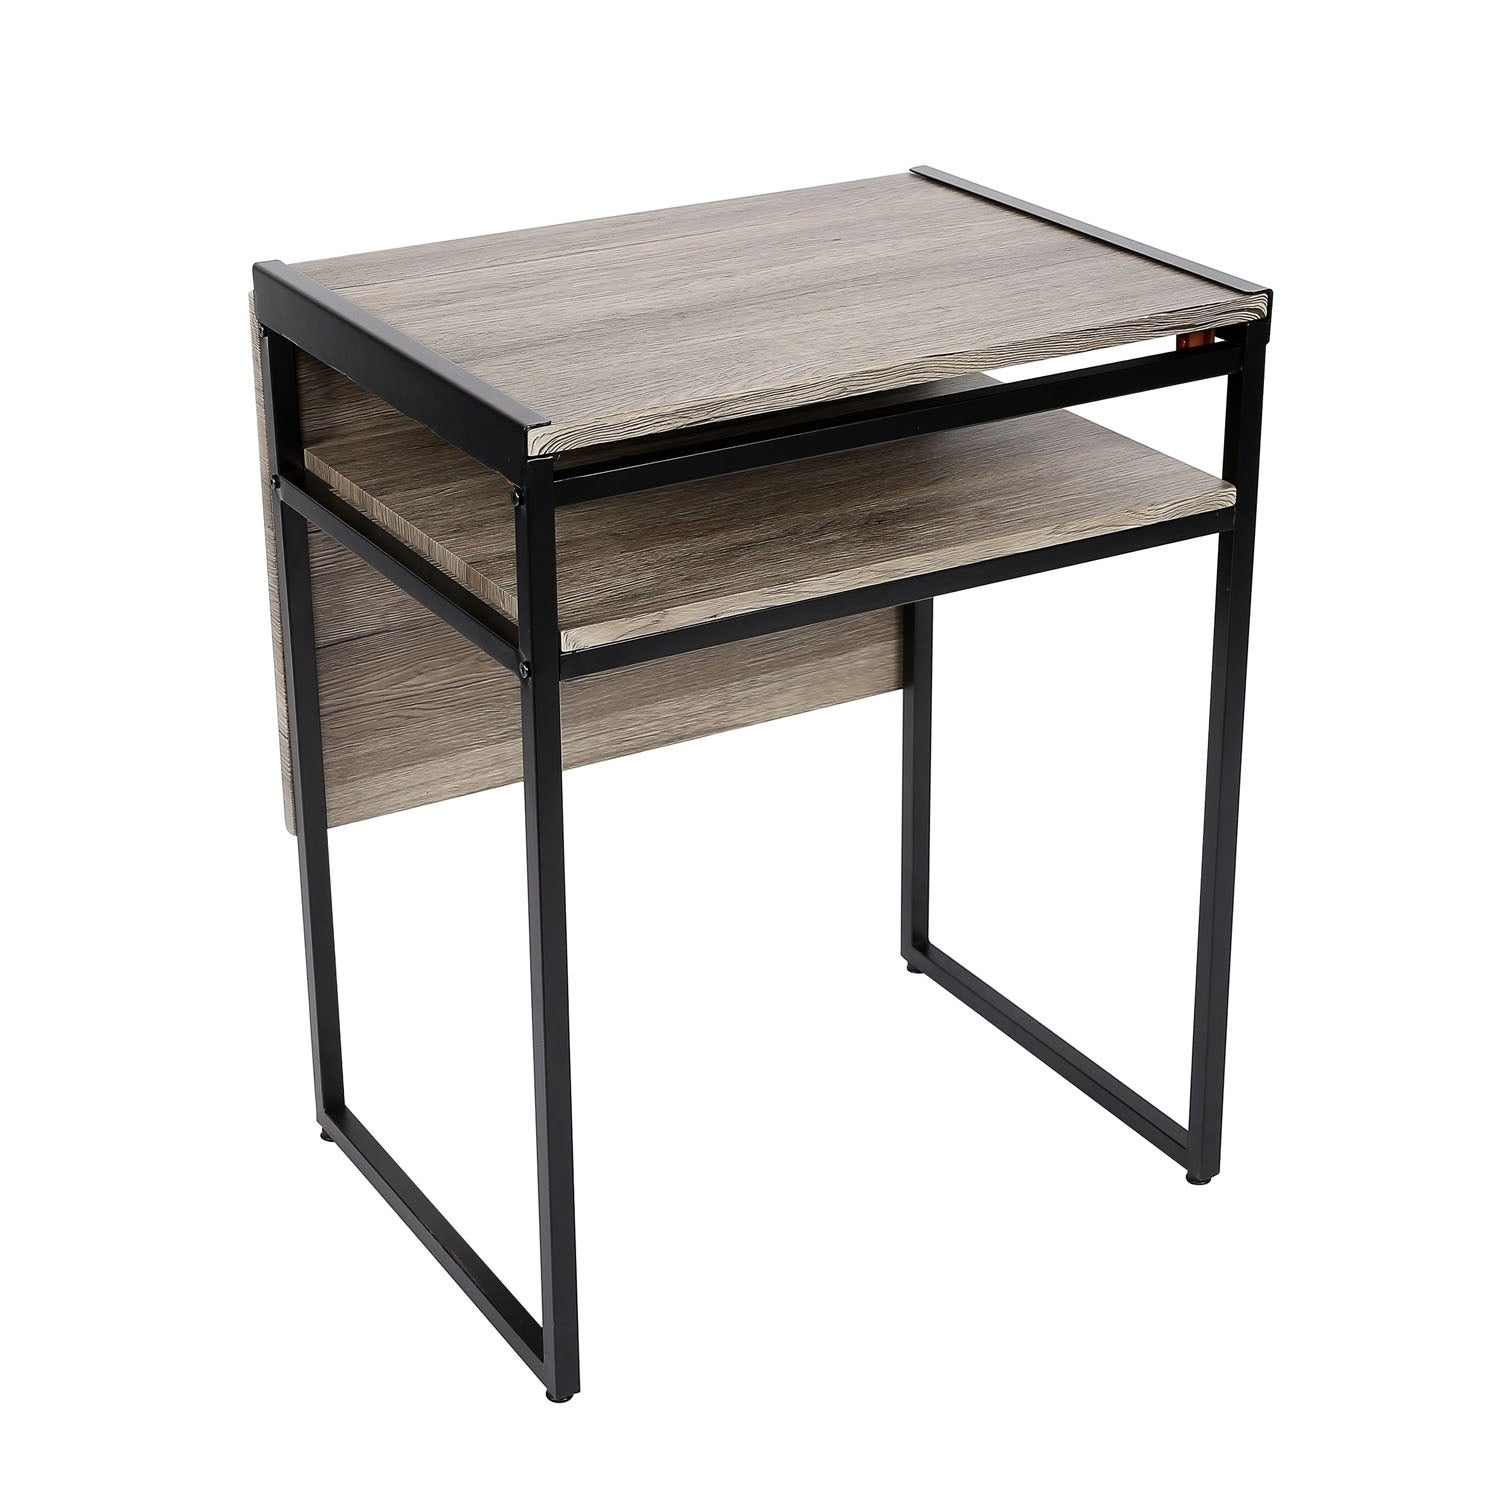 Emaster Small E Multi Functional Desk And Dining Table In Black